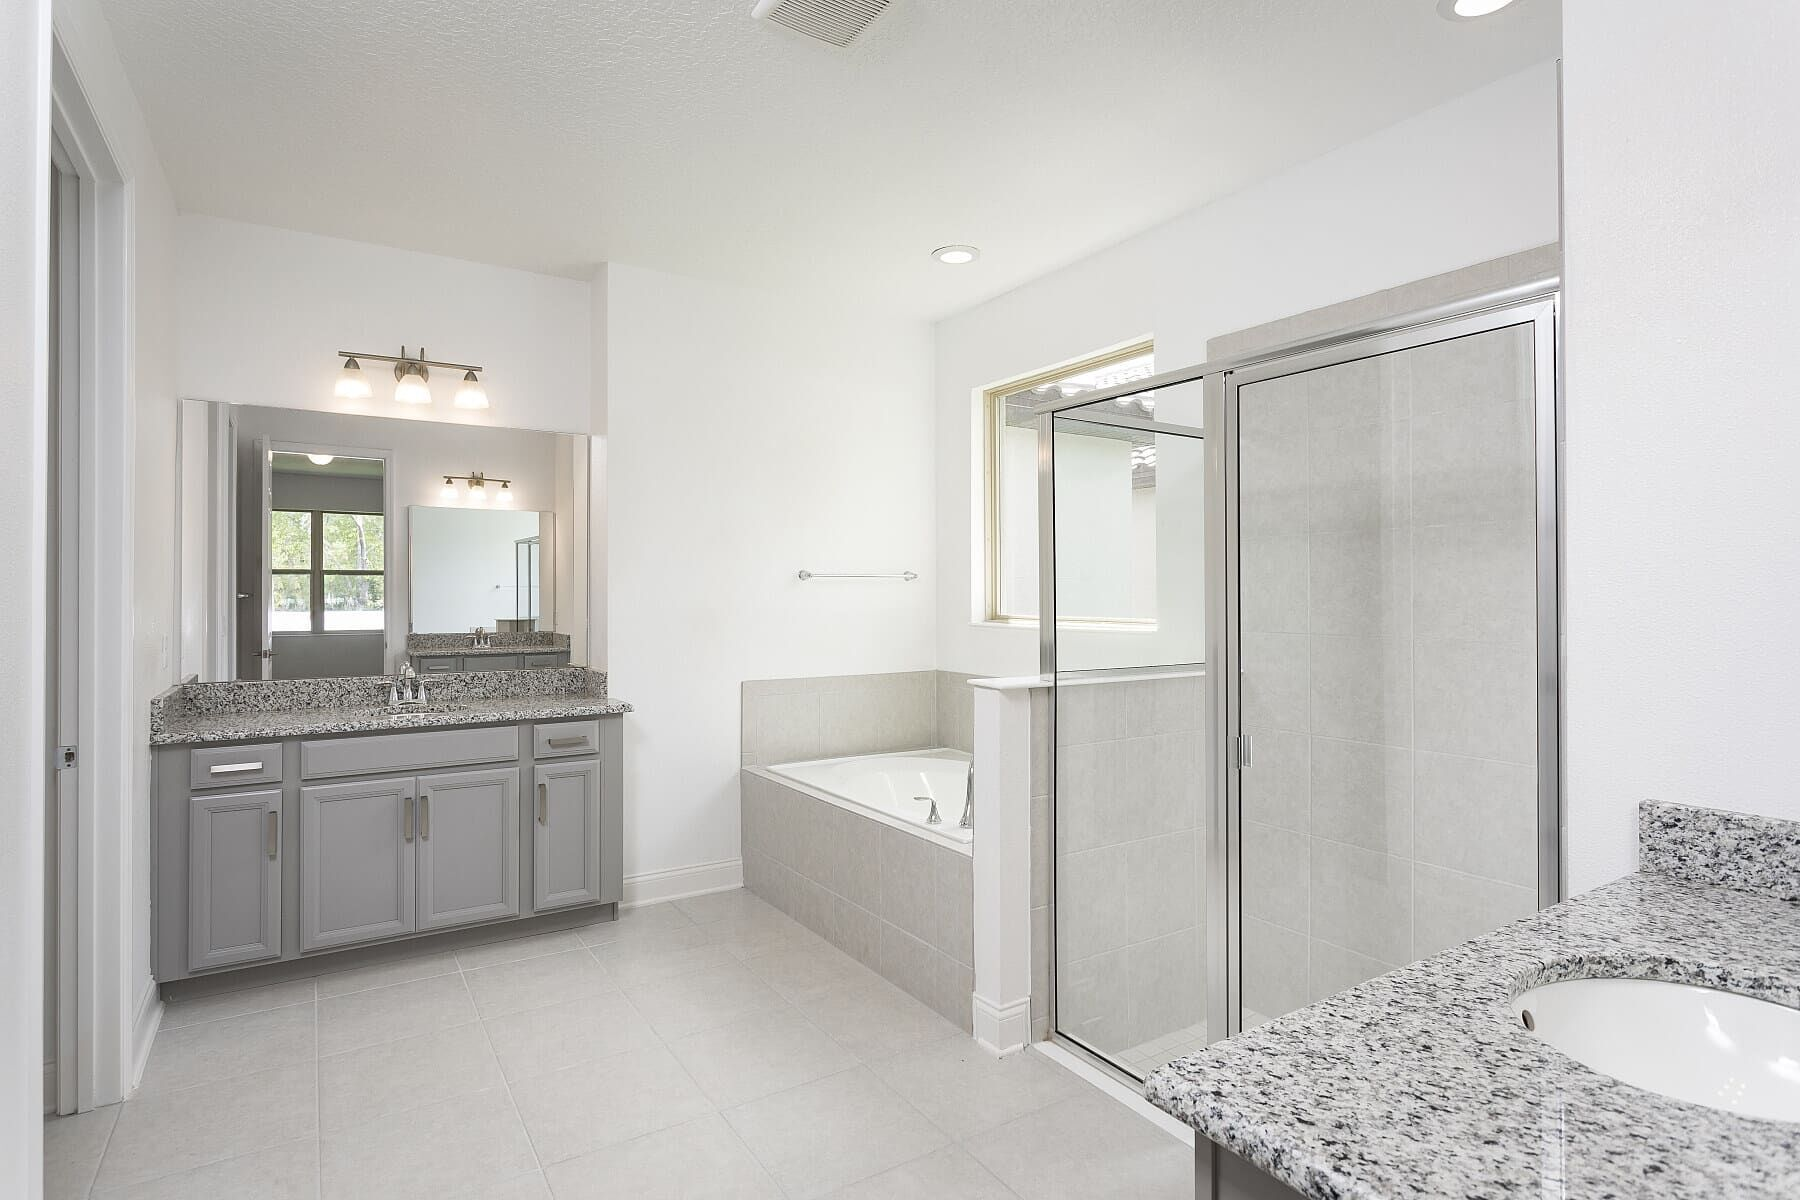 Bathroom featured in the Dorchester By M/I Homes in Orlando, FL